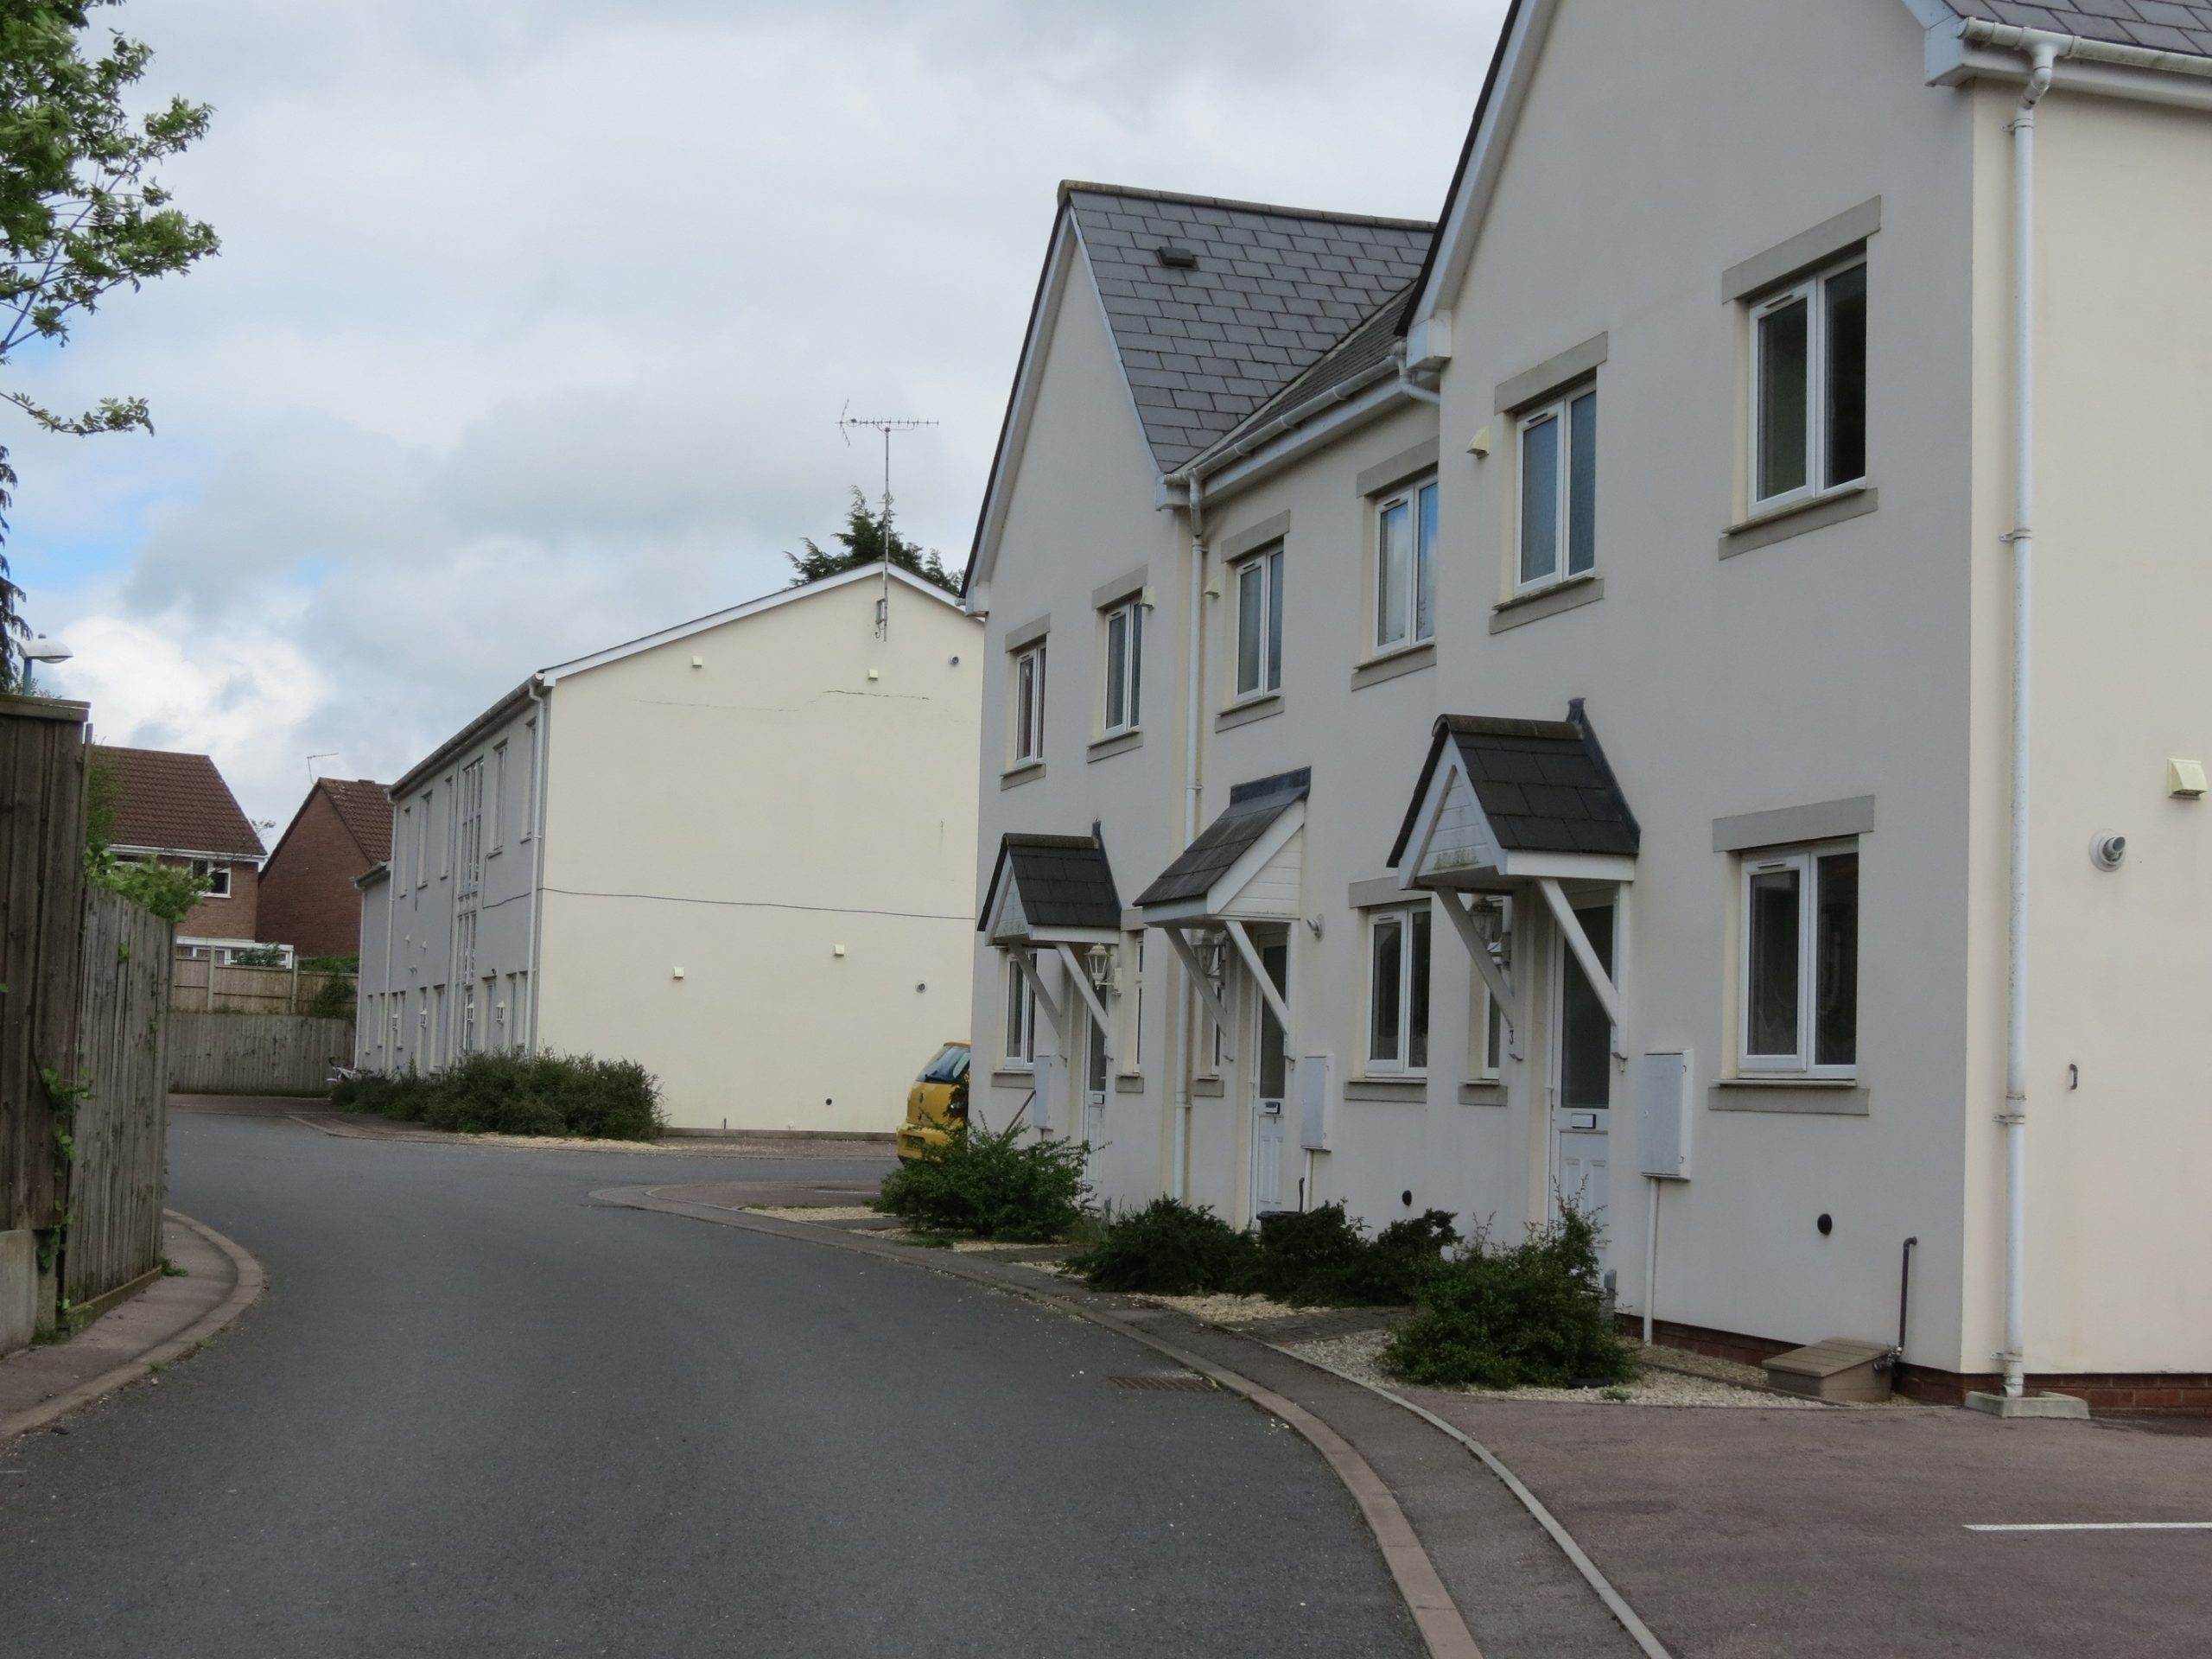 Newly built white houses facing an empty road at The Old Bakery, Bream, Gloucestershire at